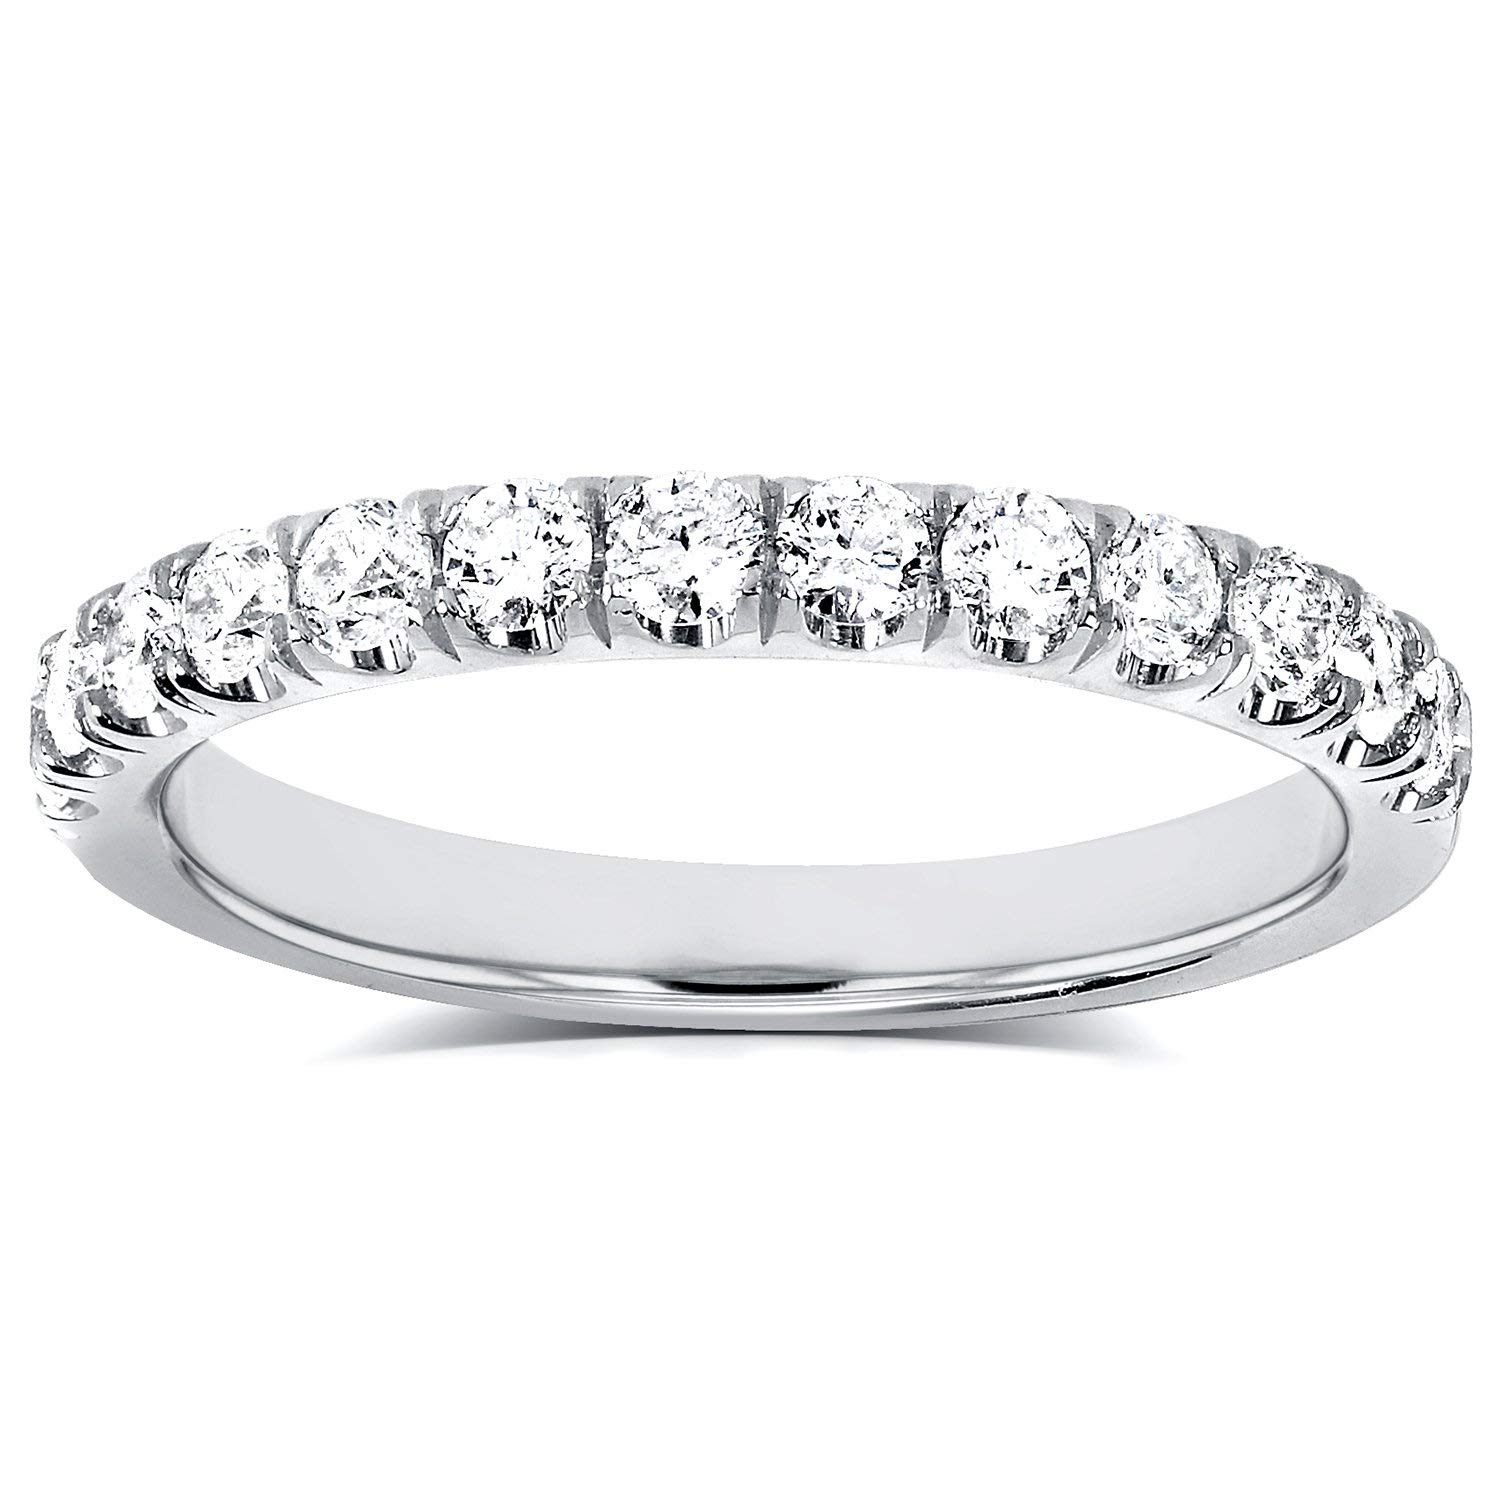 Diamond Comfort Fit Flame French Pave Band 1/2 carat (ctw) in 14K White Gold, Size 8